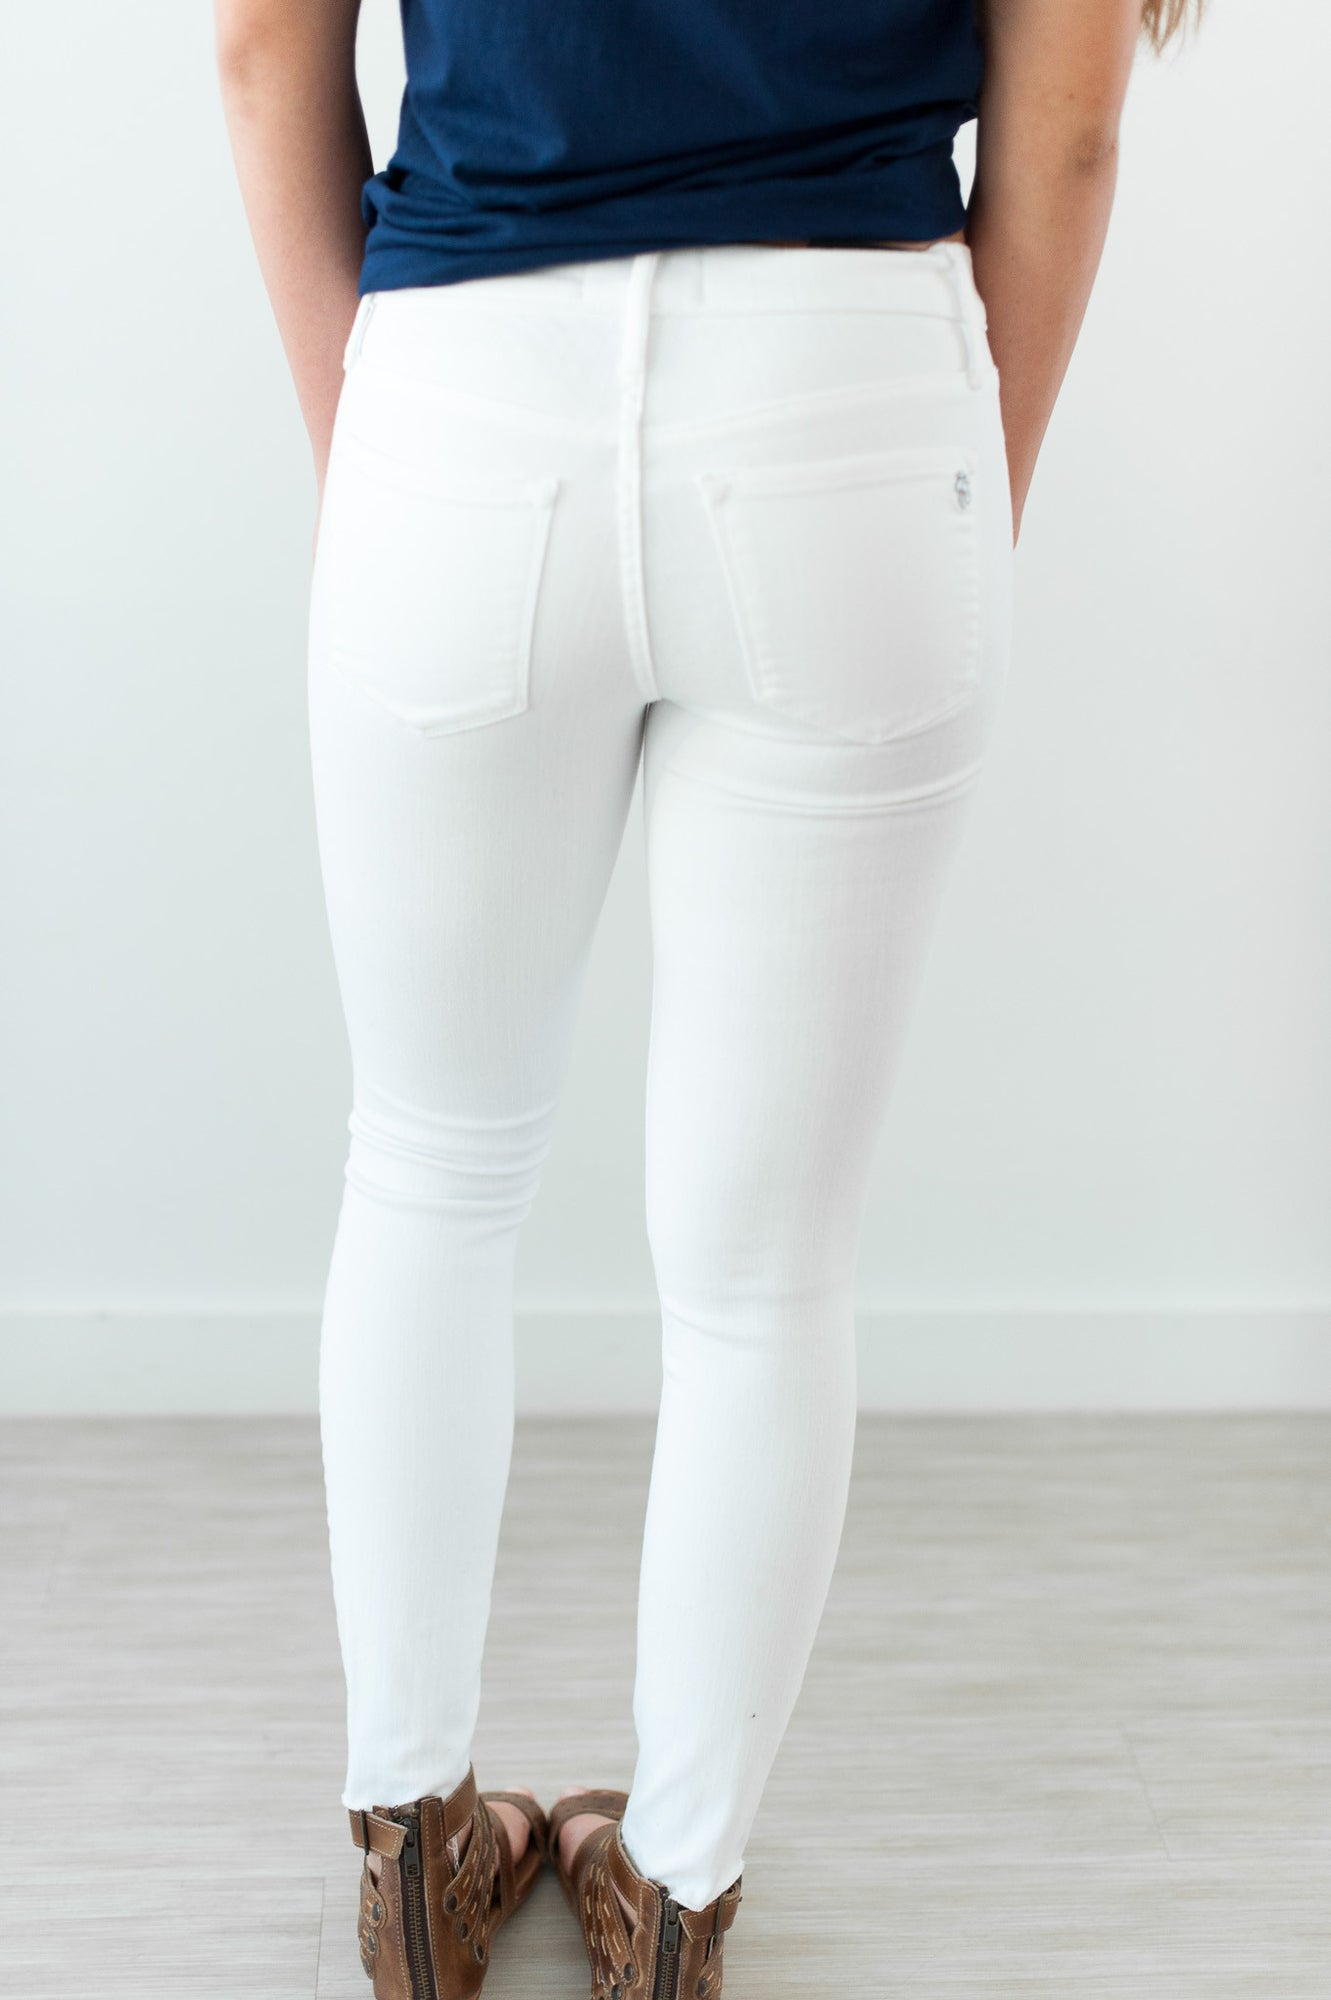 c5fe0879345 Noah (White) Destroyed Skinny Jeans   Affordable Women's Fashion ...